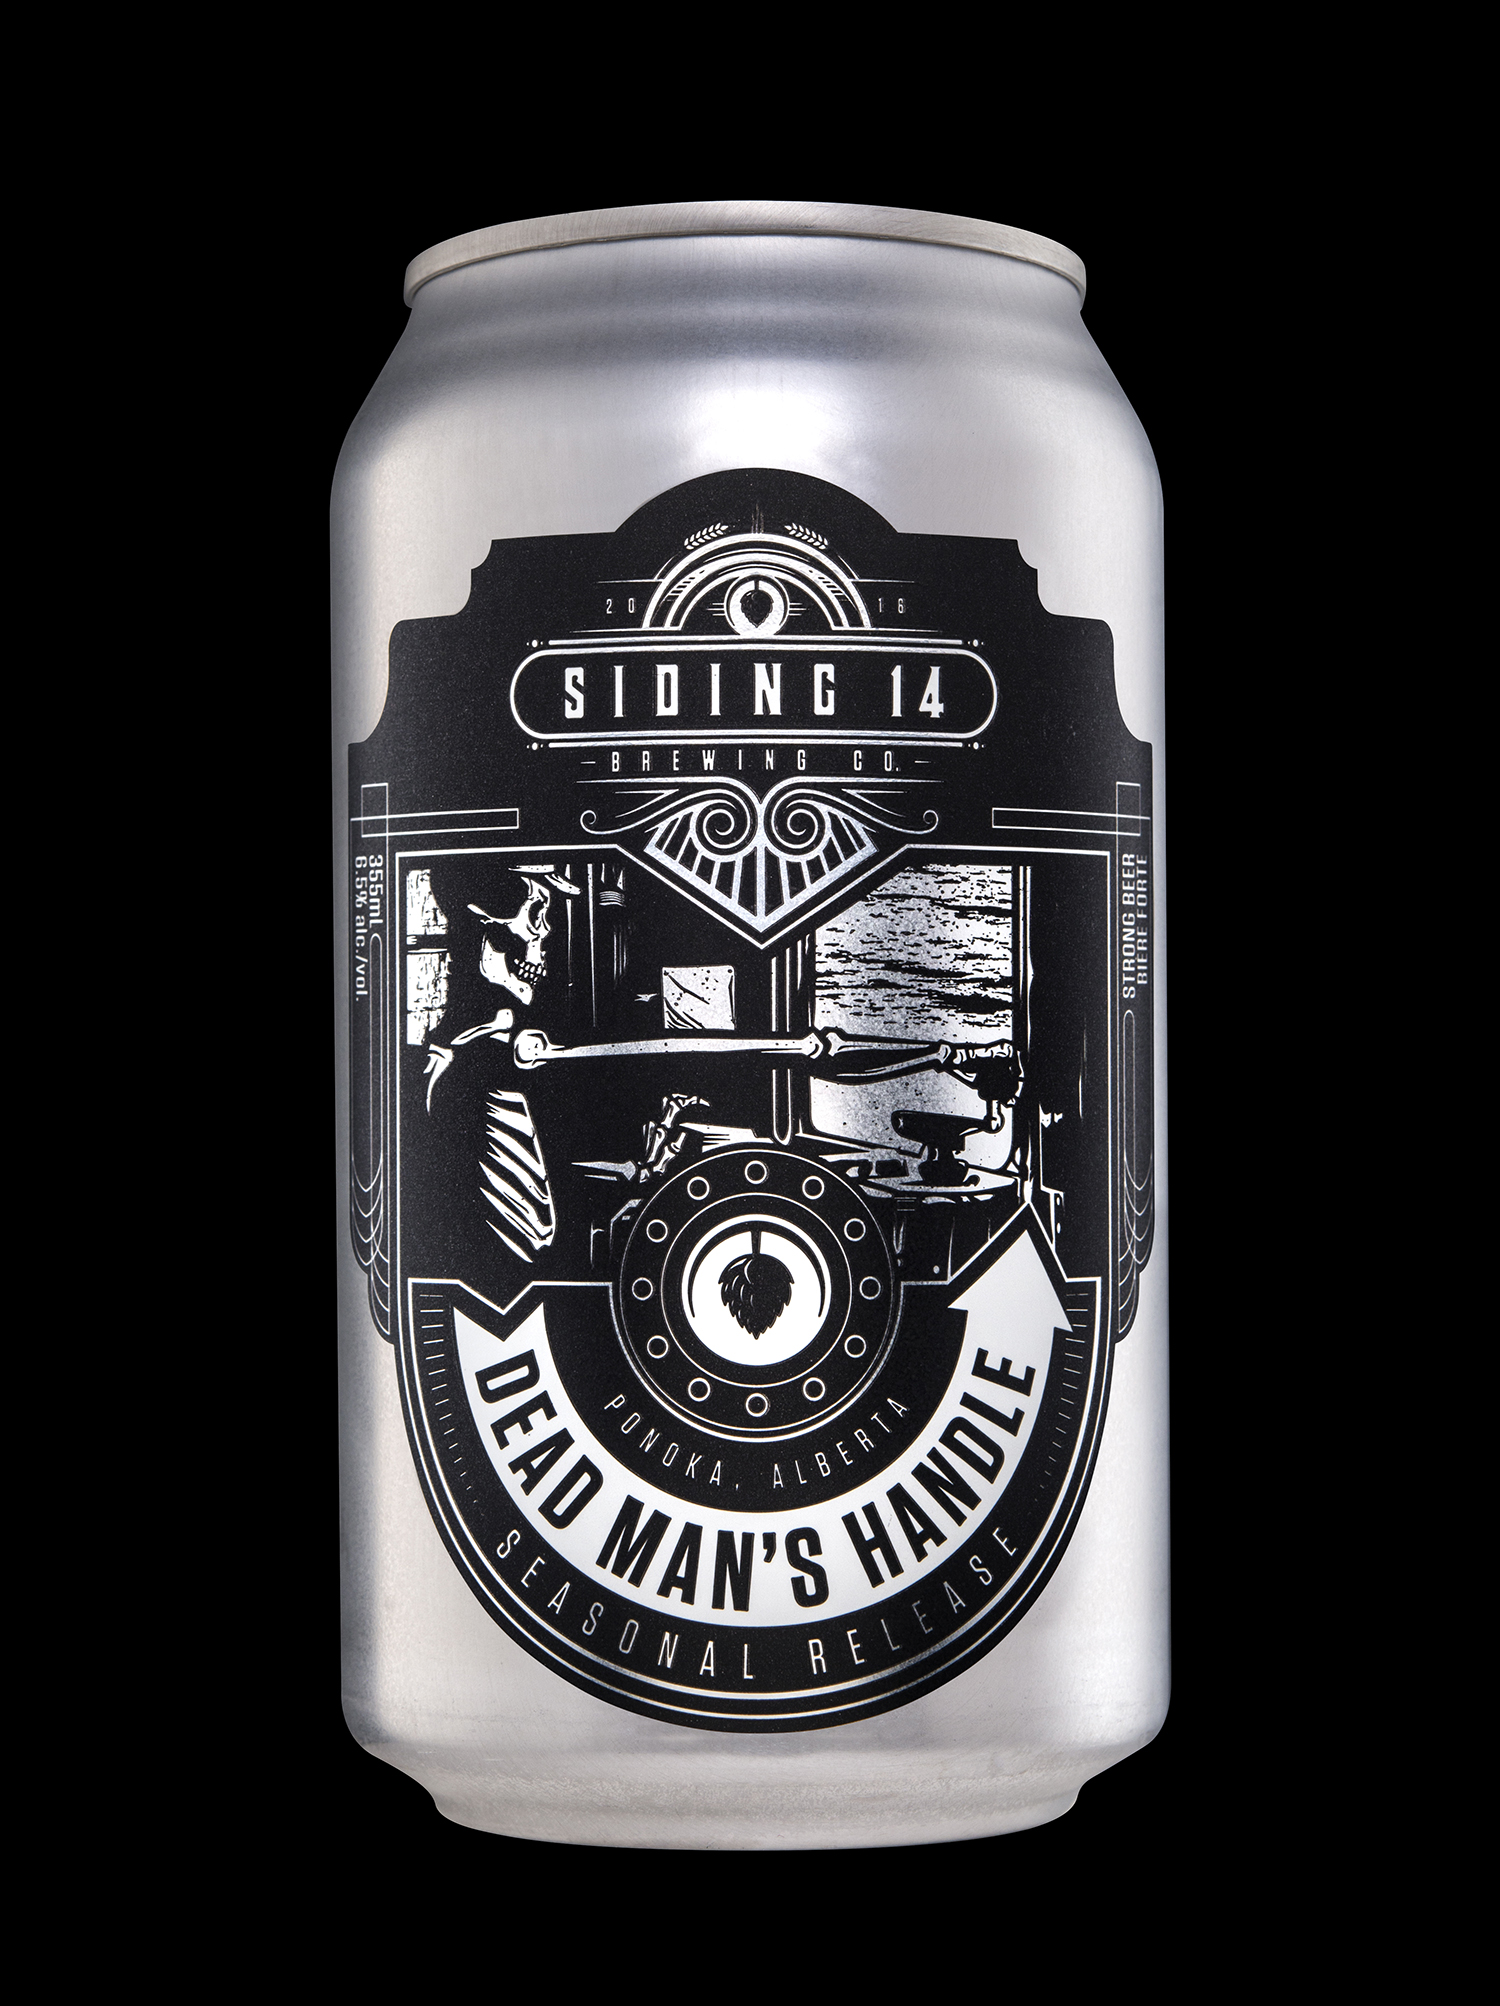 Branding and Packaging Design for Siding 14 Brewing Company